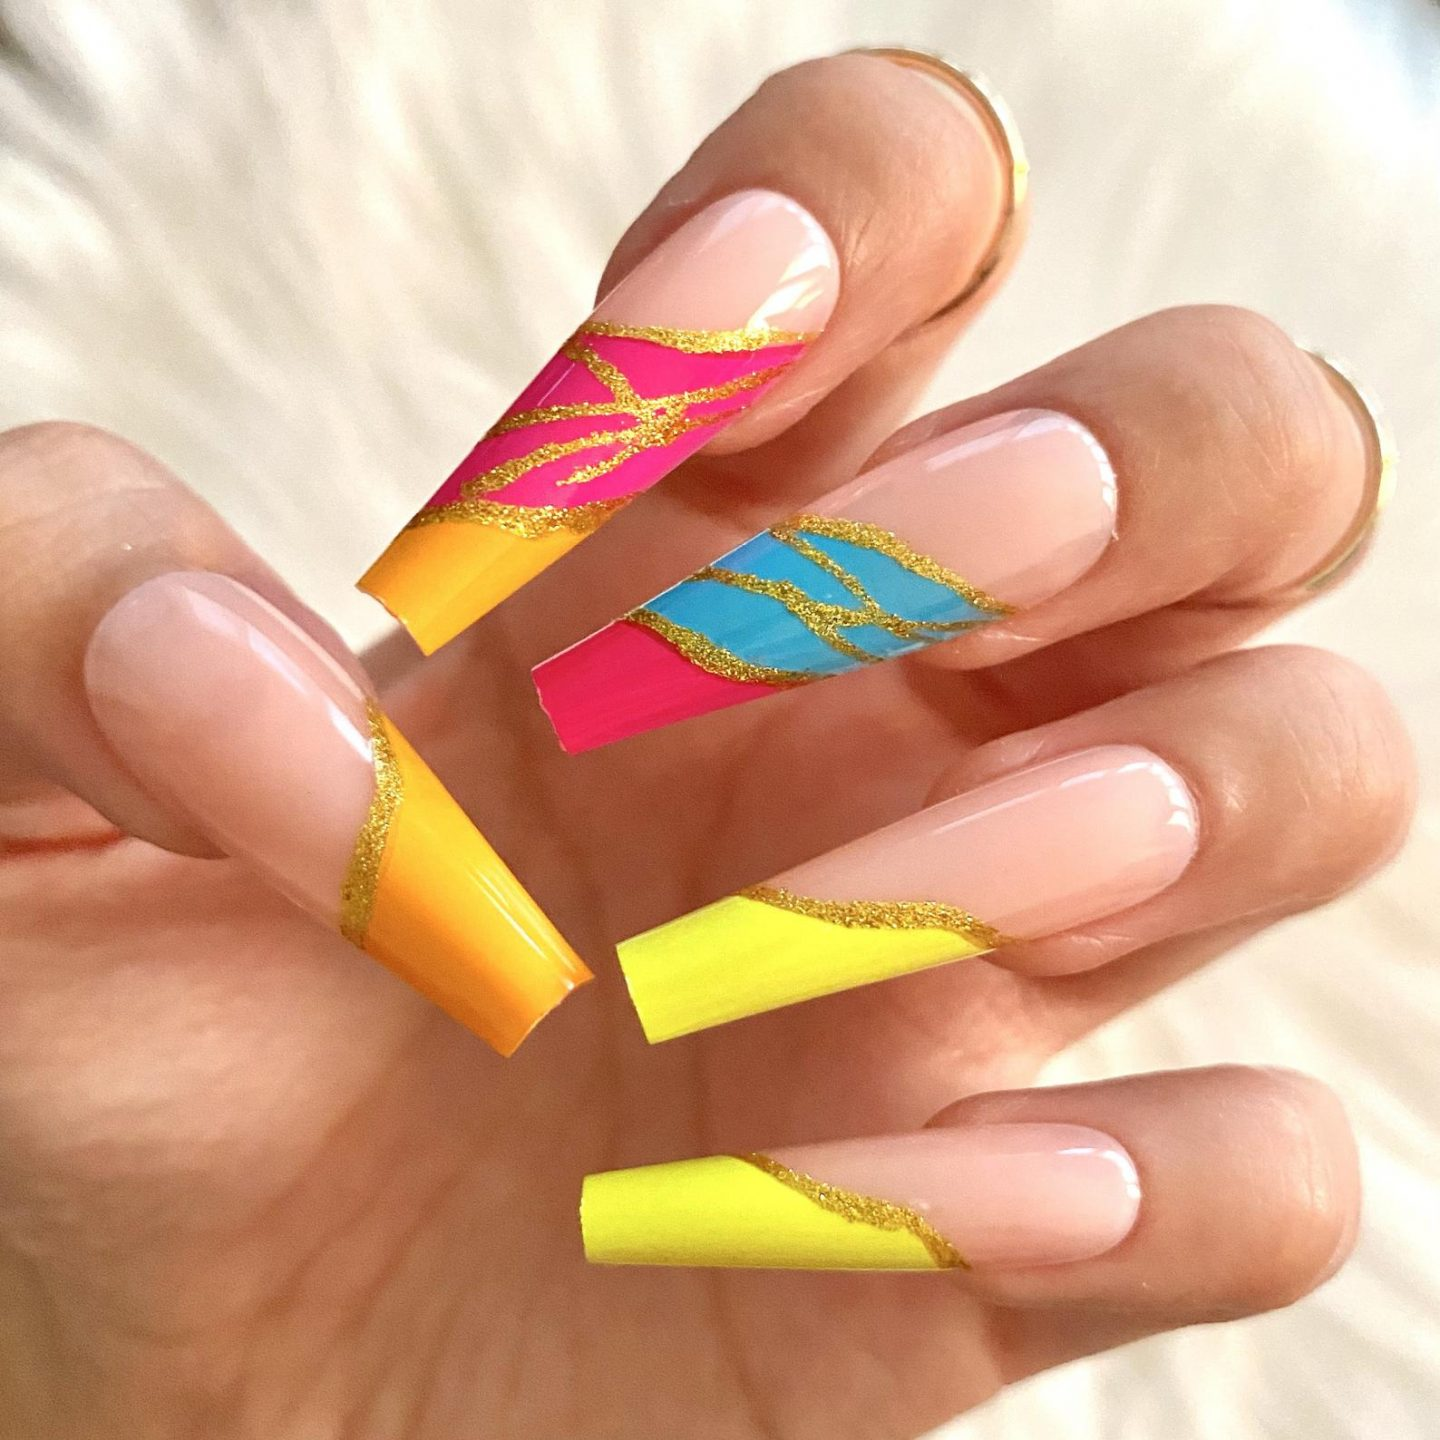 Neon yellow, blue and red coffin nails with gold glitter